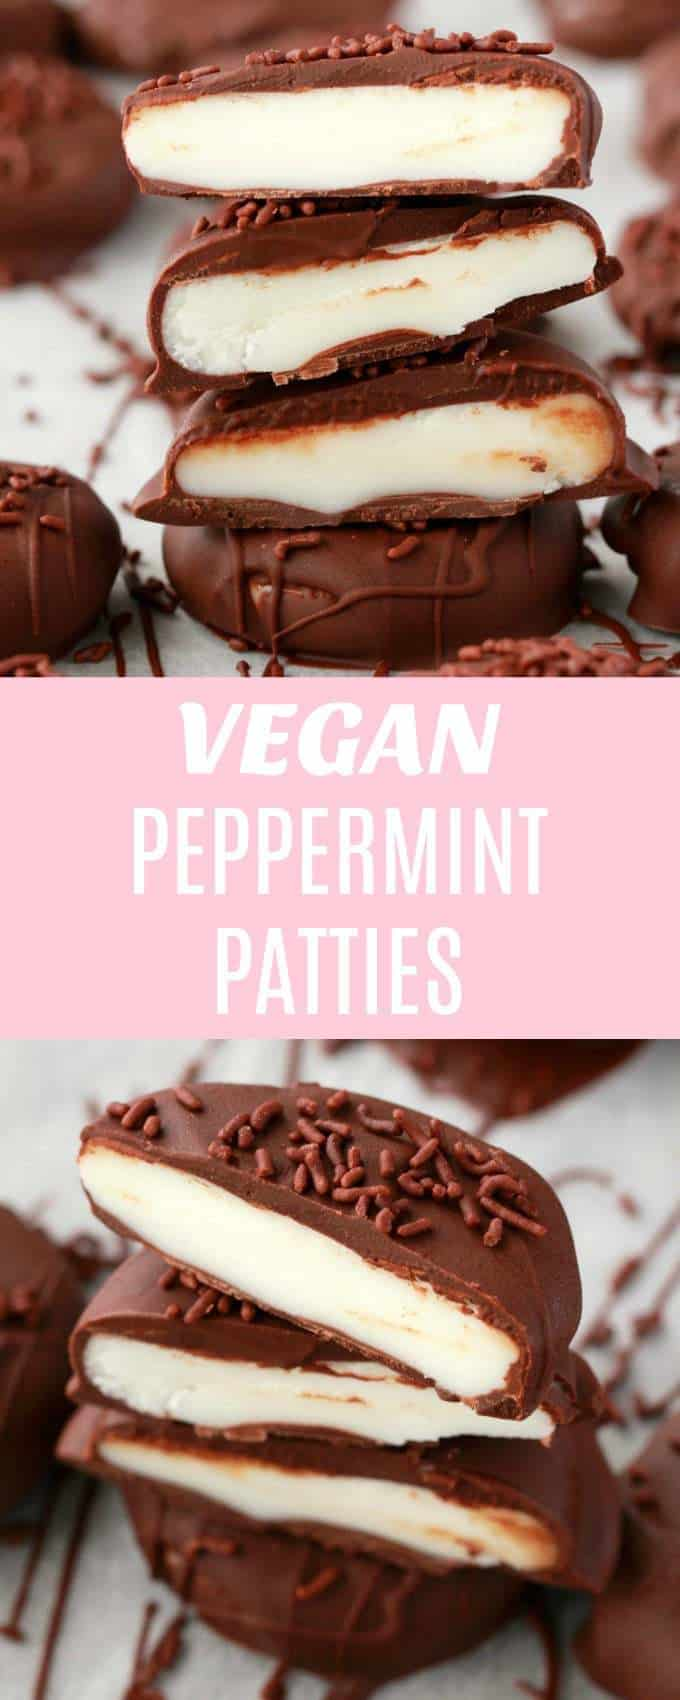 Perfectly textured melt-in-the-mouth vegan peppermint patties! These creamy, dreamy peppermint desserts are so easy and fun to make and they're so good you'll want to have a permanent stash of these in your fridge! | lovingitvegan.com